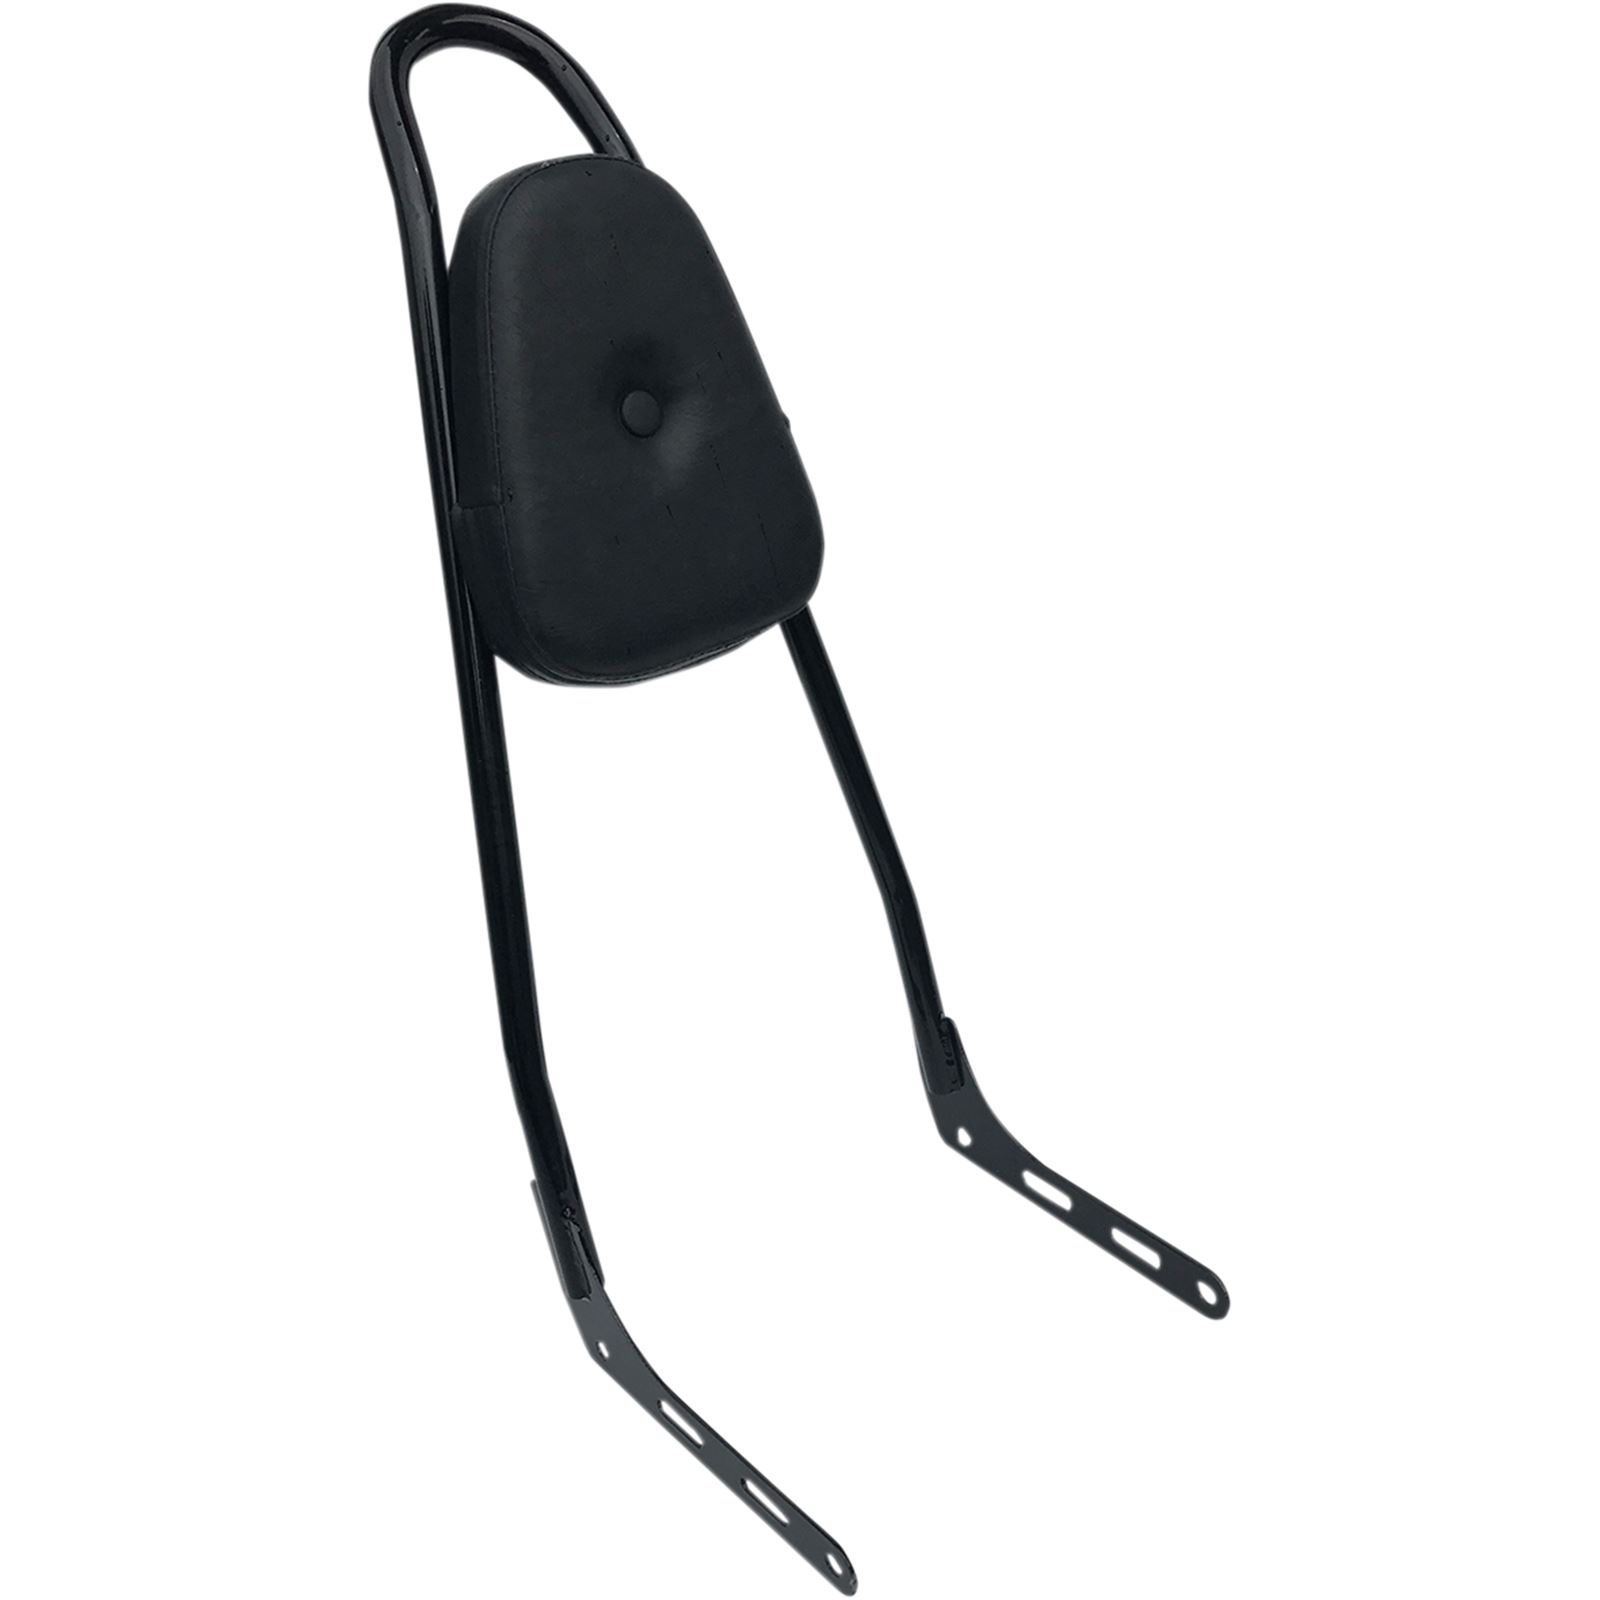 Motherwell One-Piece Sissy Bar - Black - With Pad